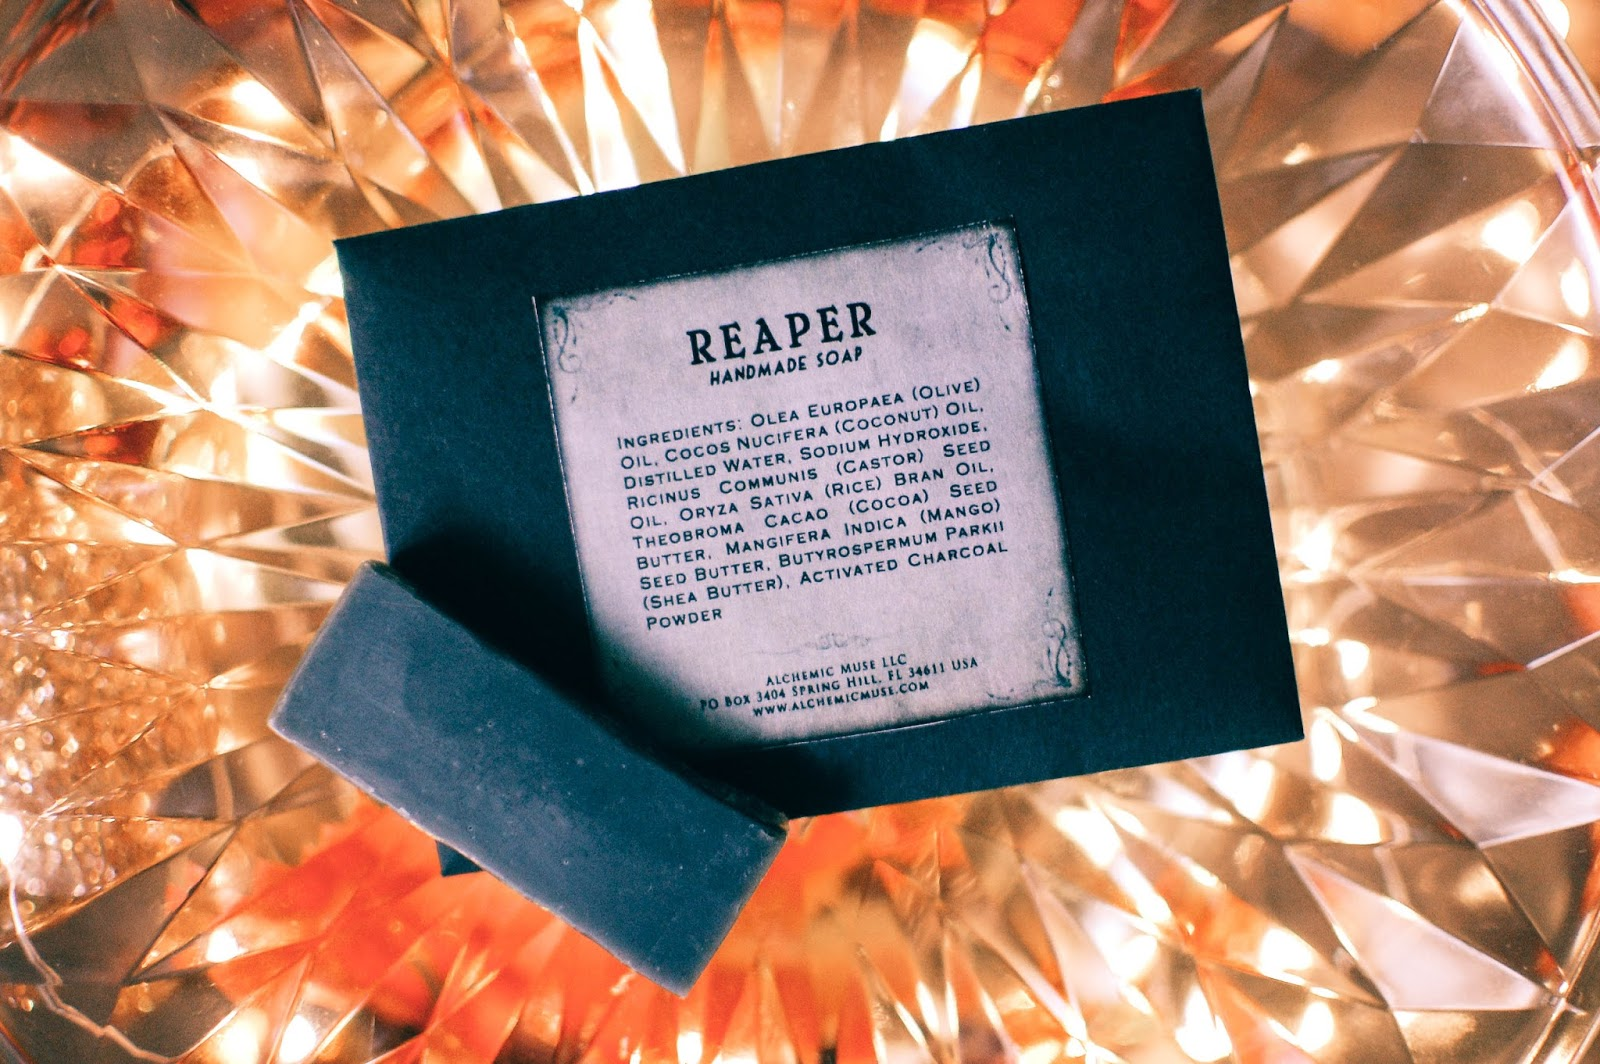 b553c7446f2 Free sample soap sliver in Reaper was generously added to my order. It may  be my next purchase as well as more Vanilla Oak. Reaper is a another  version of ...